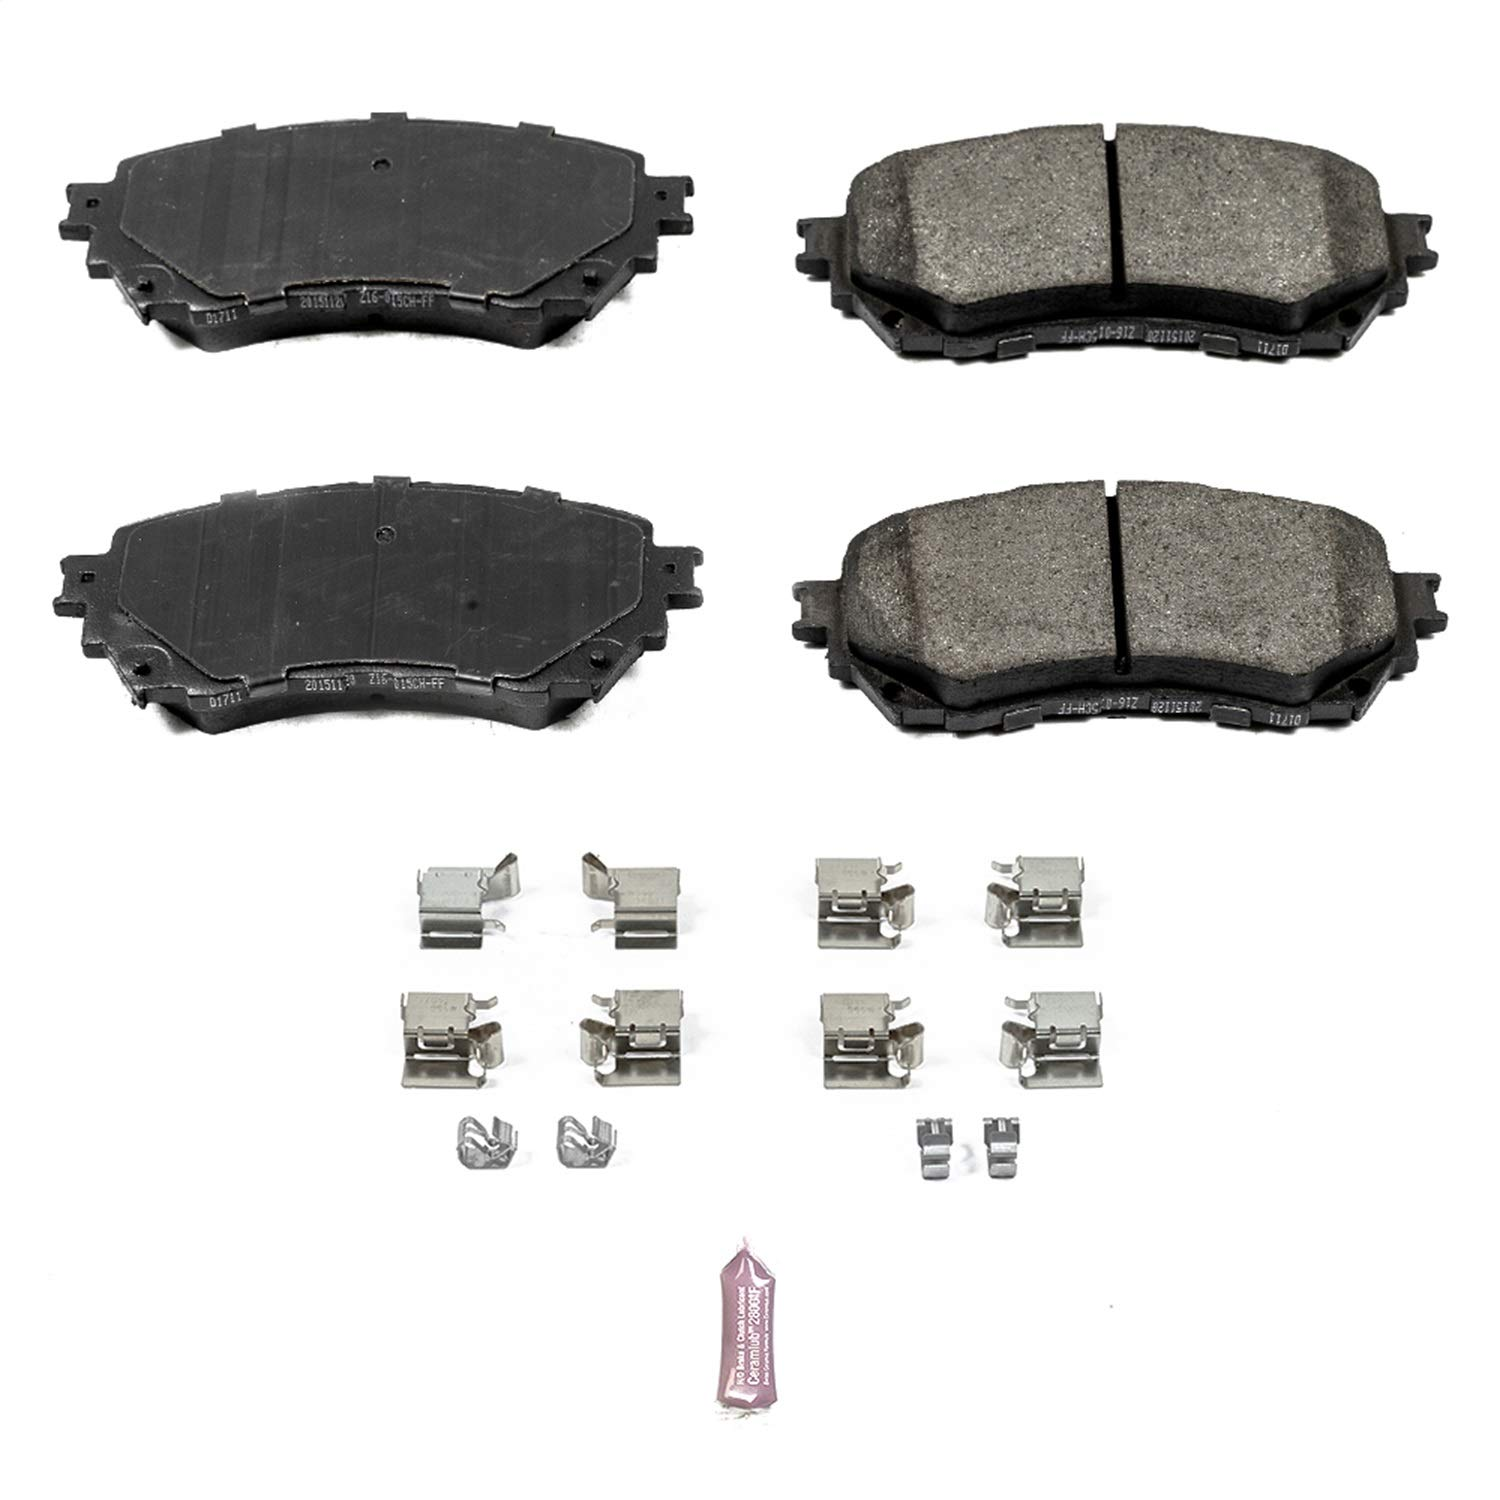 Power Stop 17-1711 Z17 Evolution Plus Clean Ride Ceramic Brake Pad with Premium Hardware Kit Included